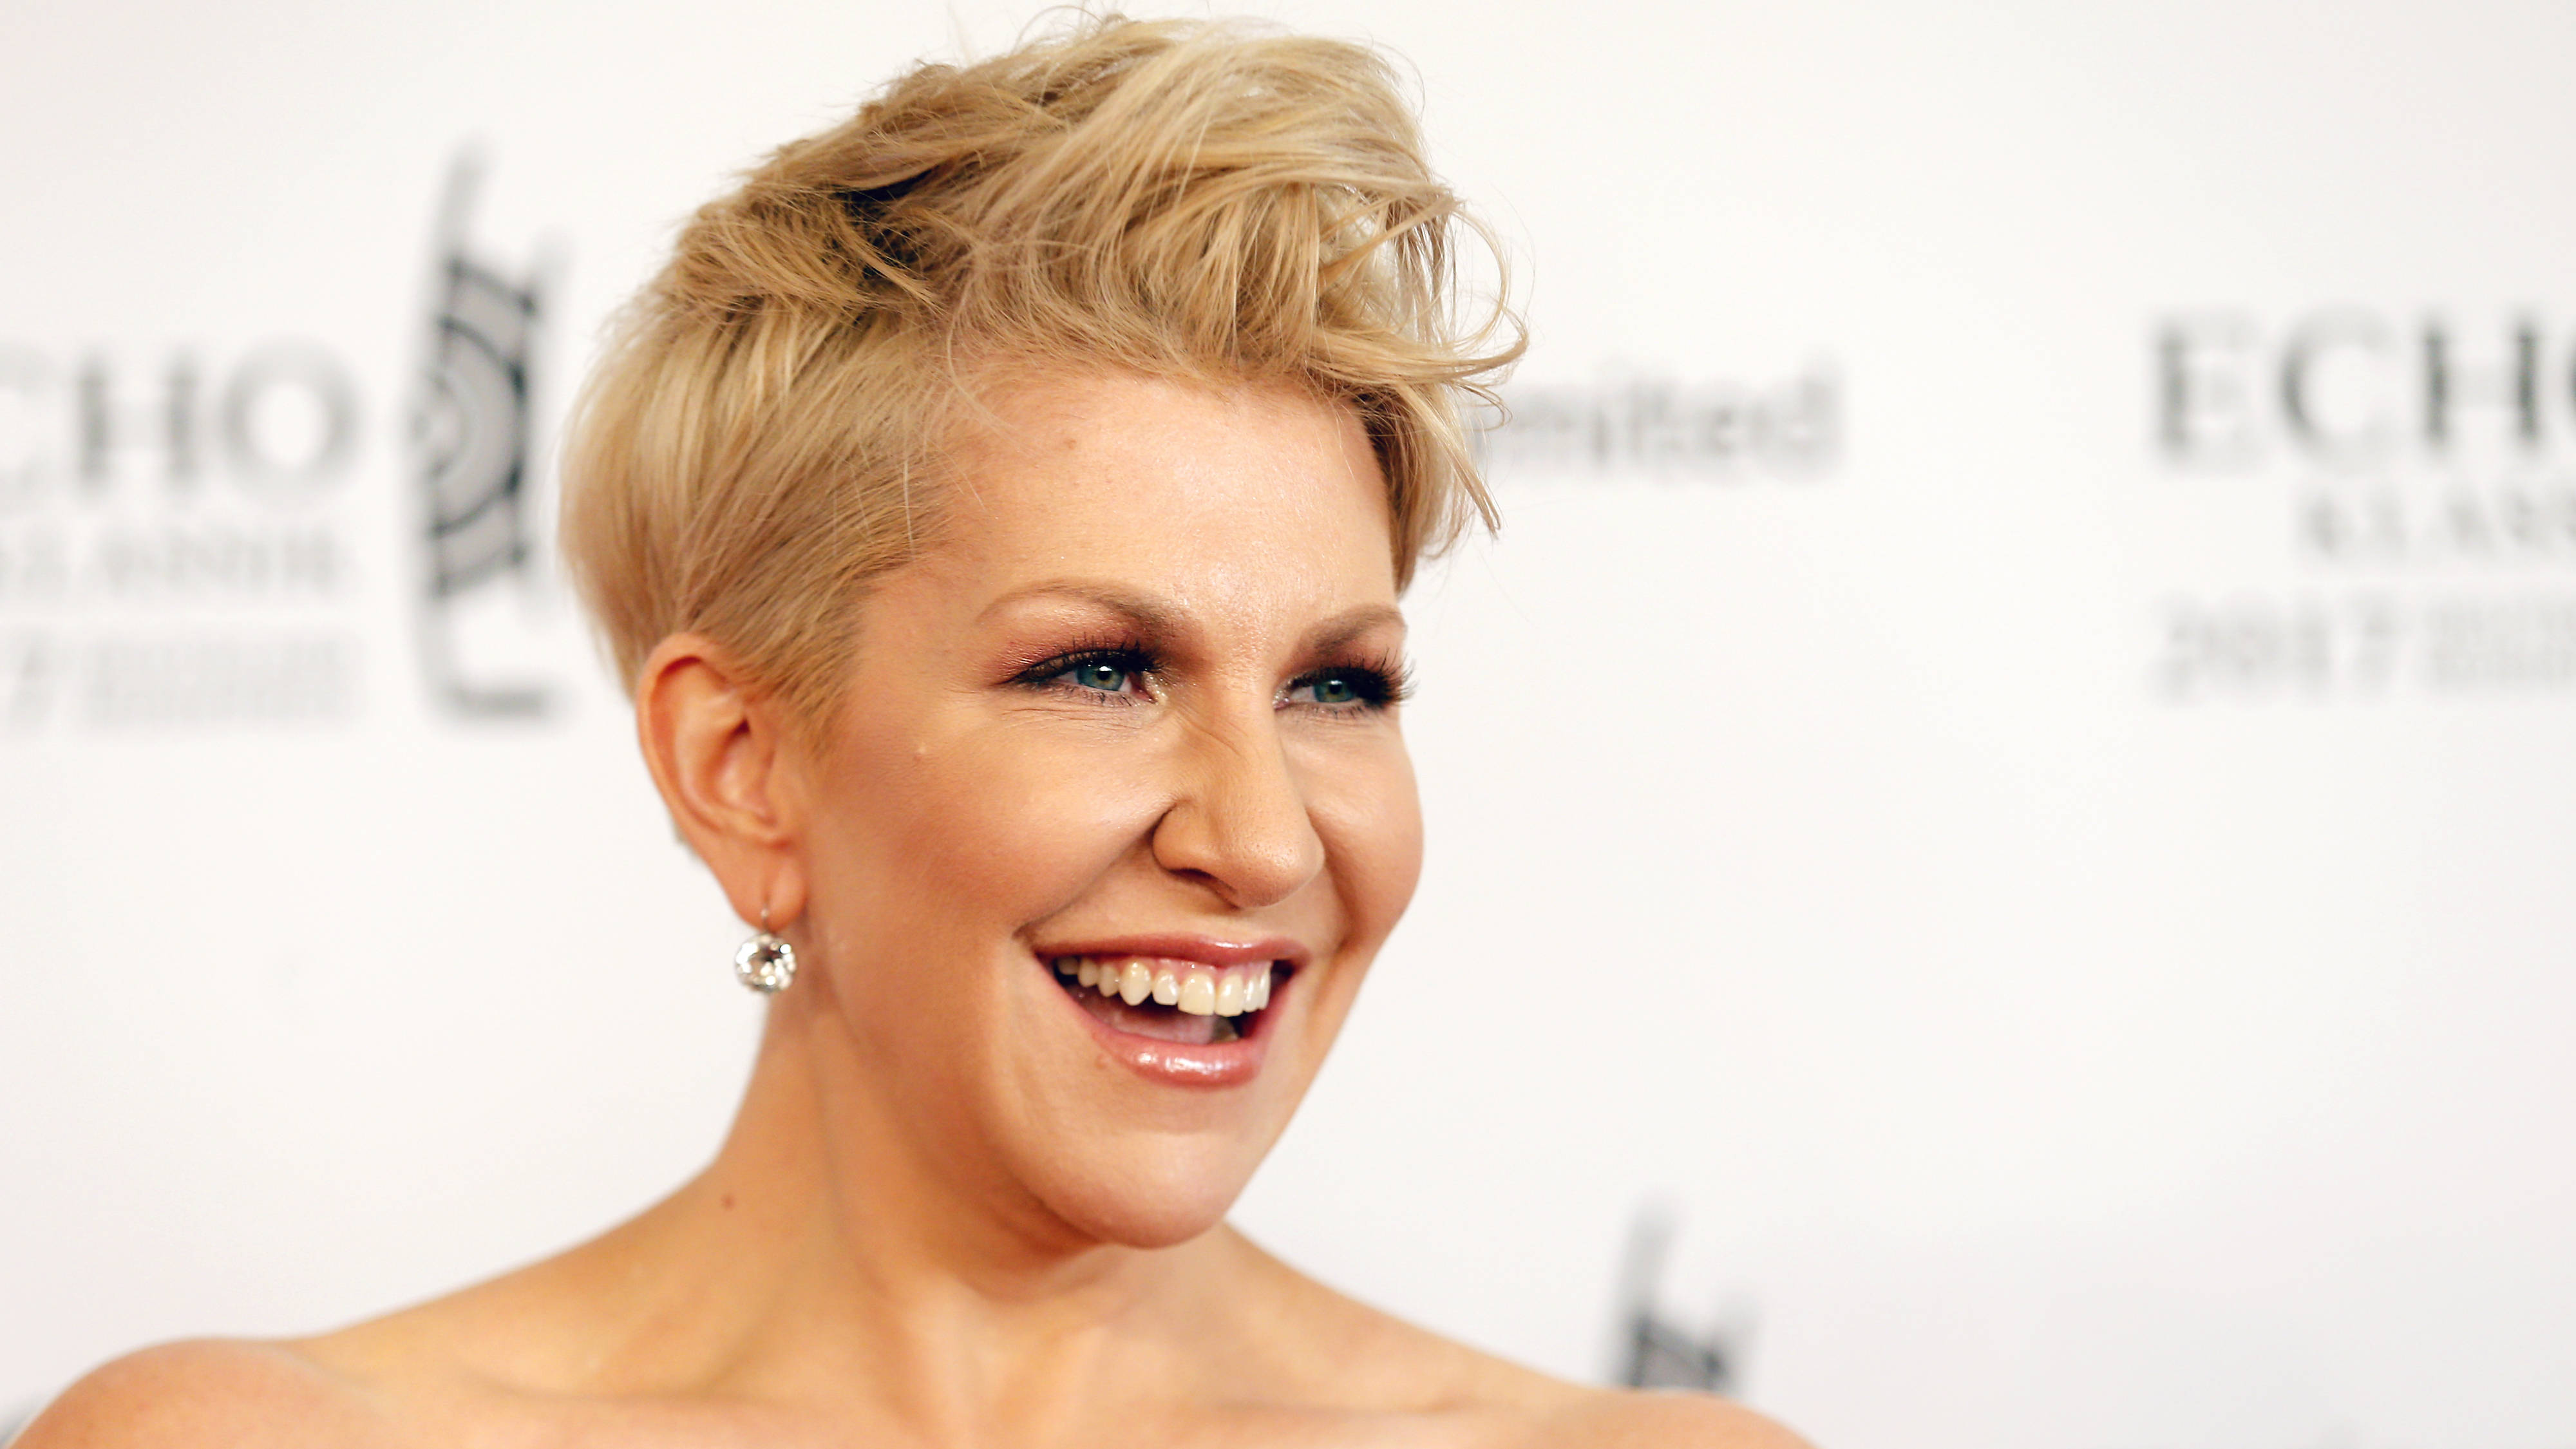 Who is Joyce DiDonato? Get to know the American operatic mezzo-soprano